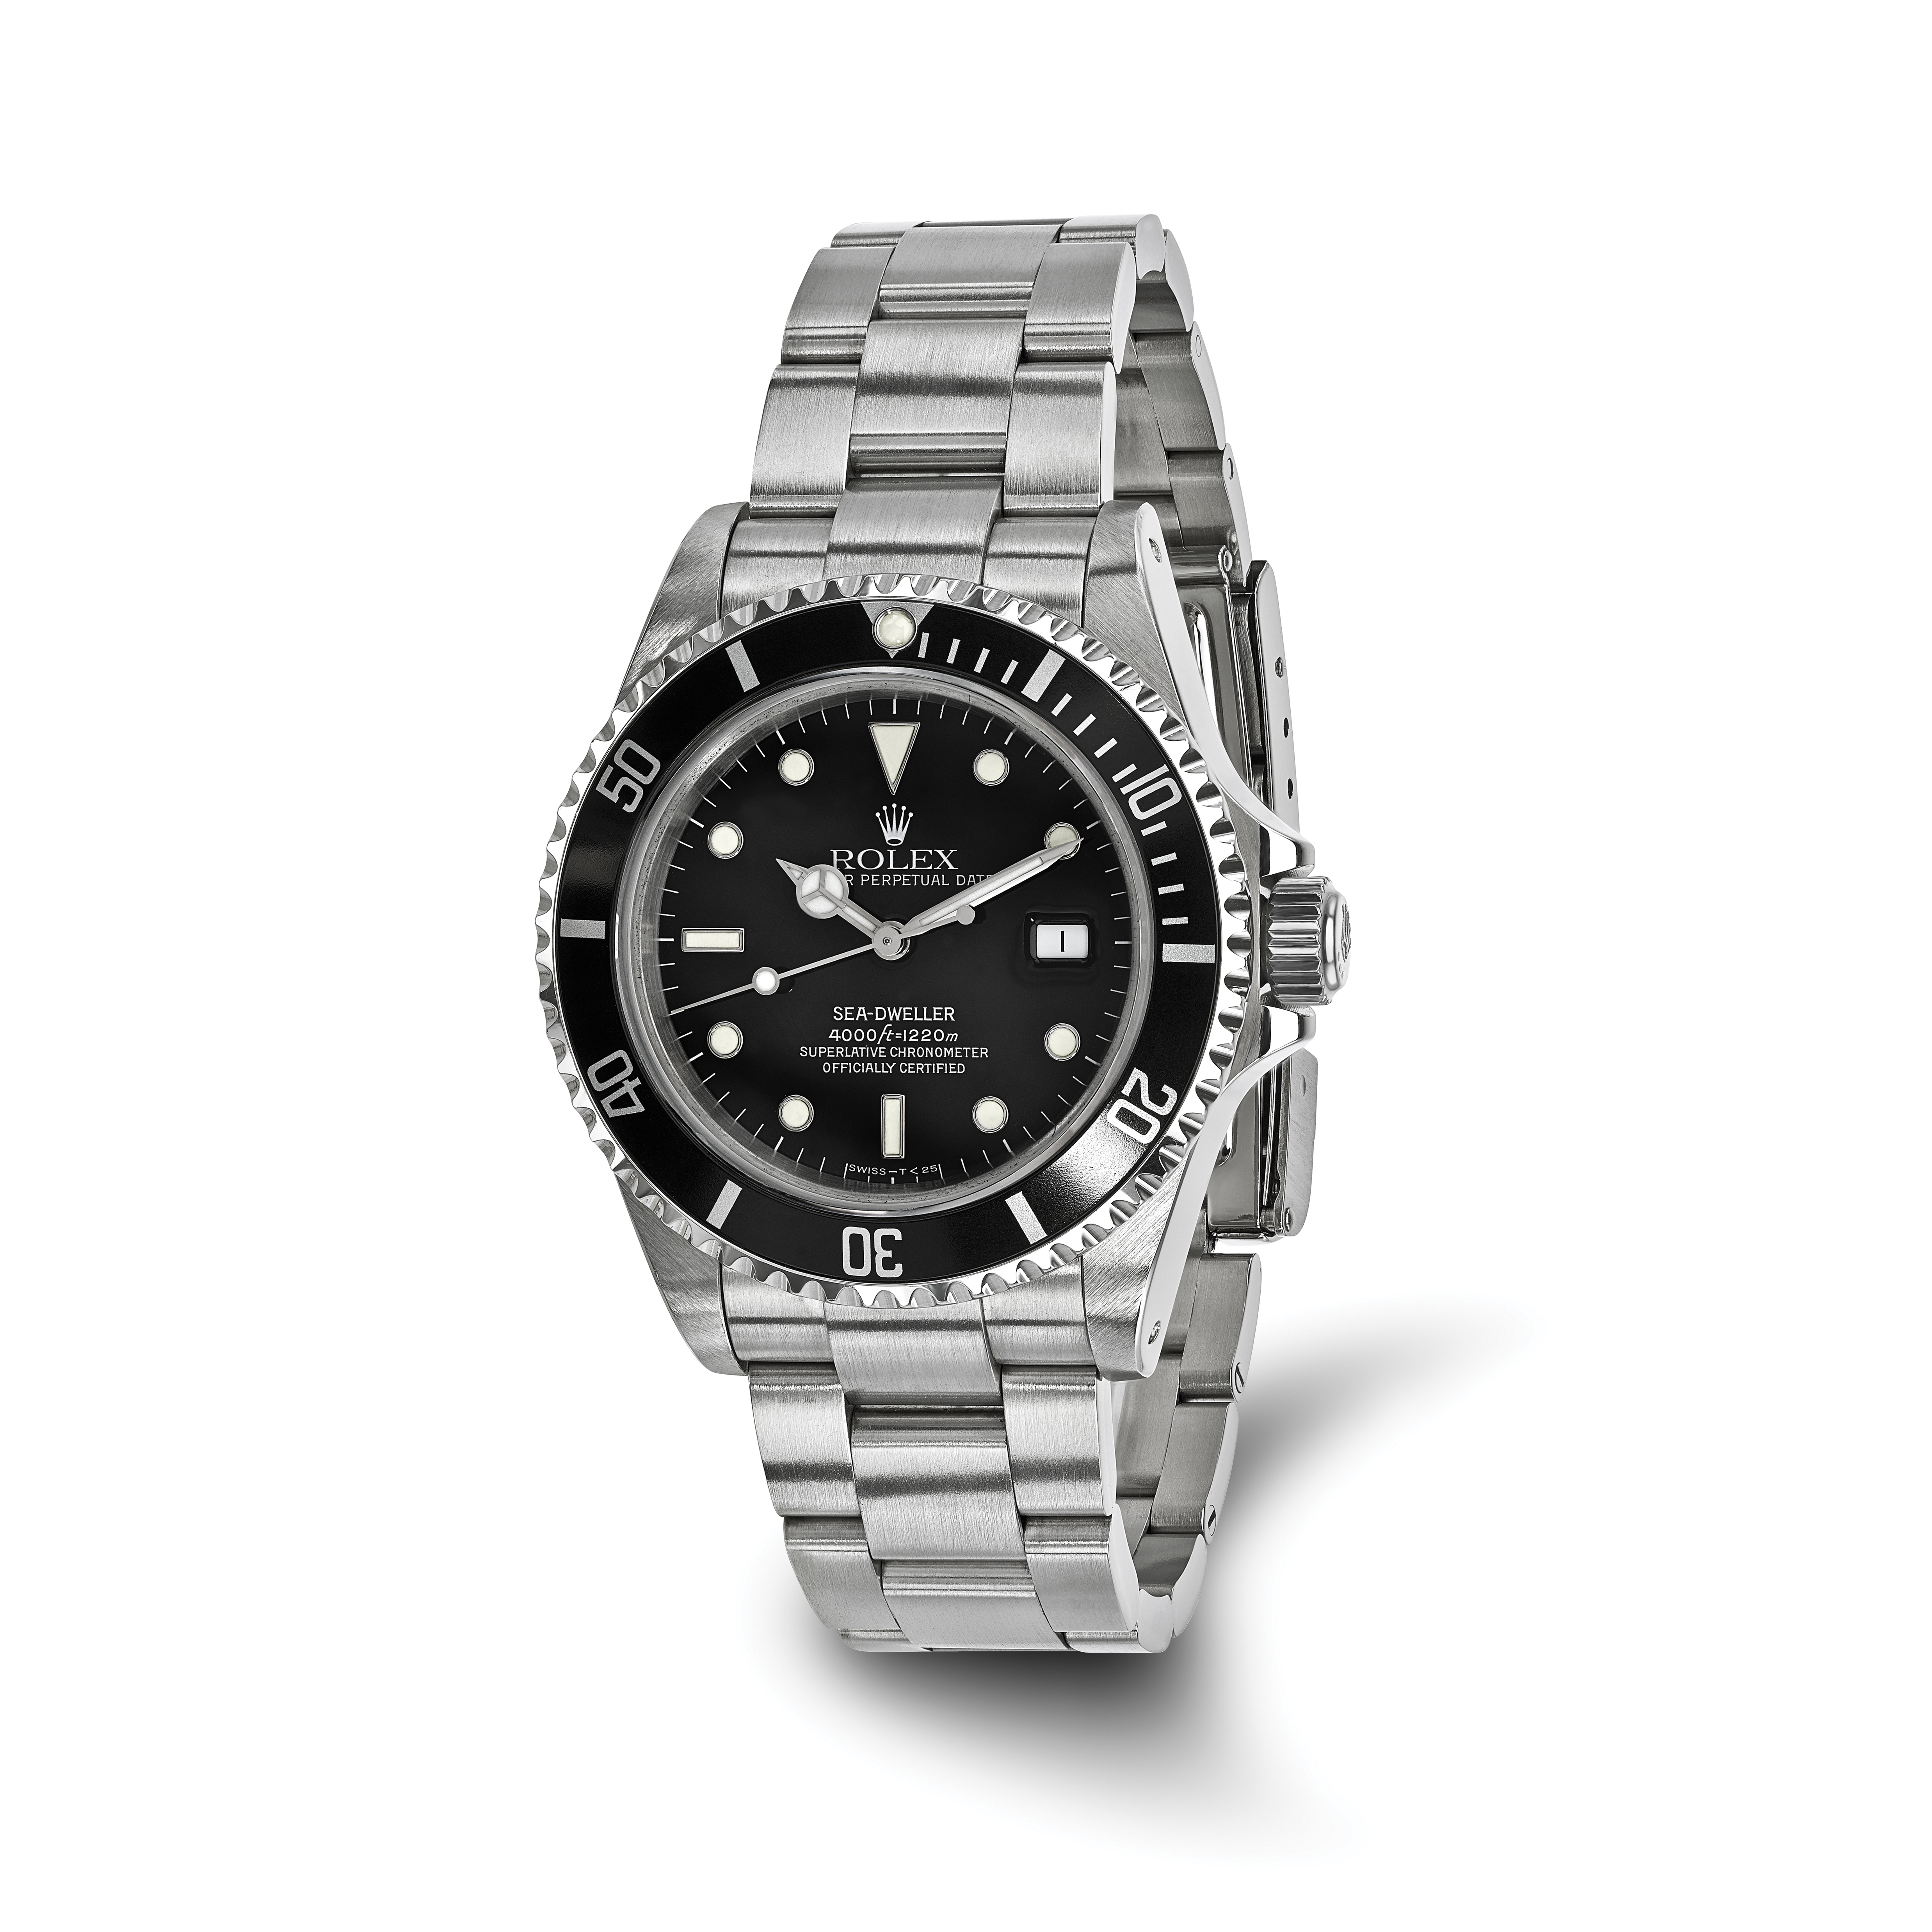 Pre-owned Rolex Stainless Steel Mens Sea Dweller Black Watch